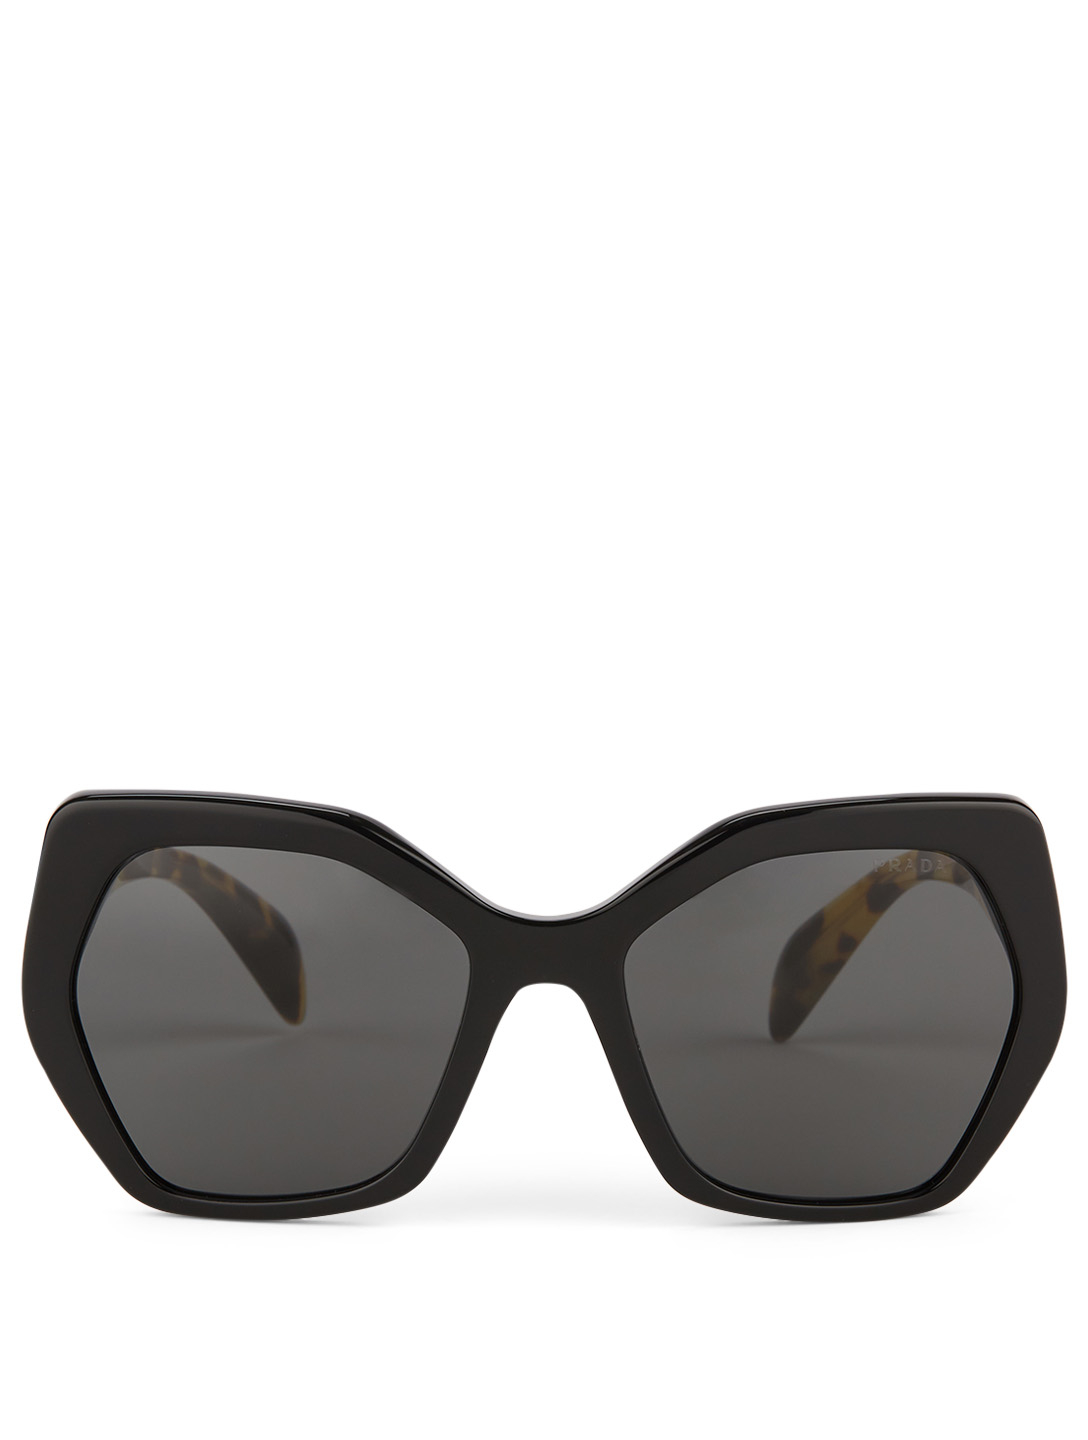 PRADA Hexagonal Sunglasses Designers Grey